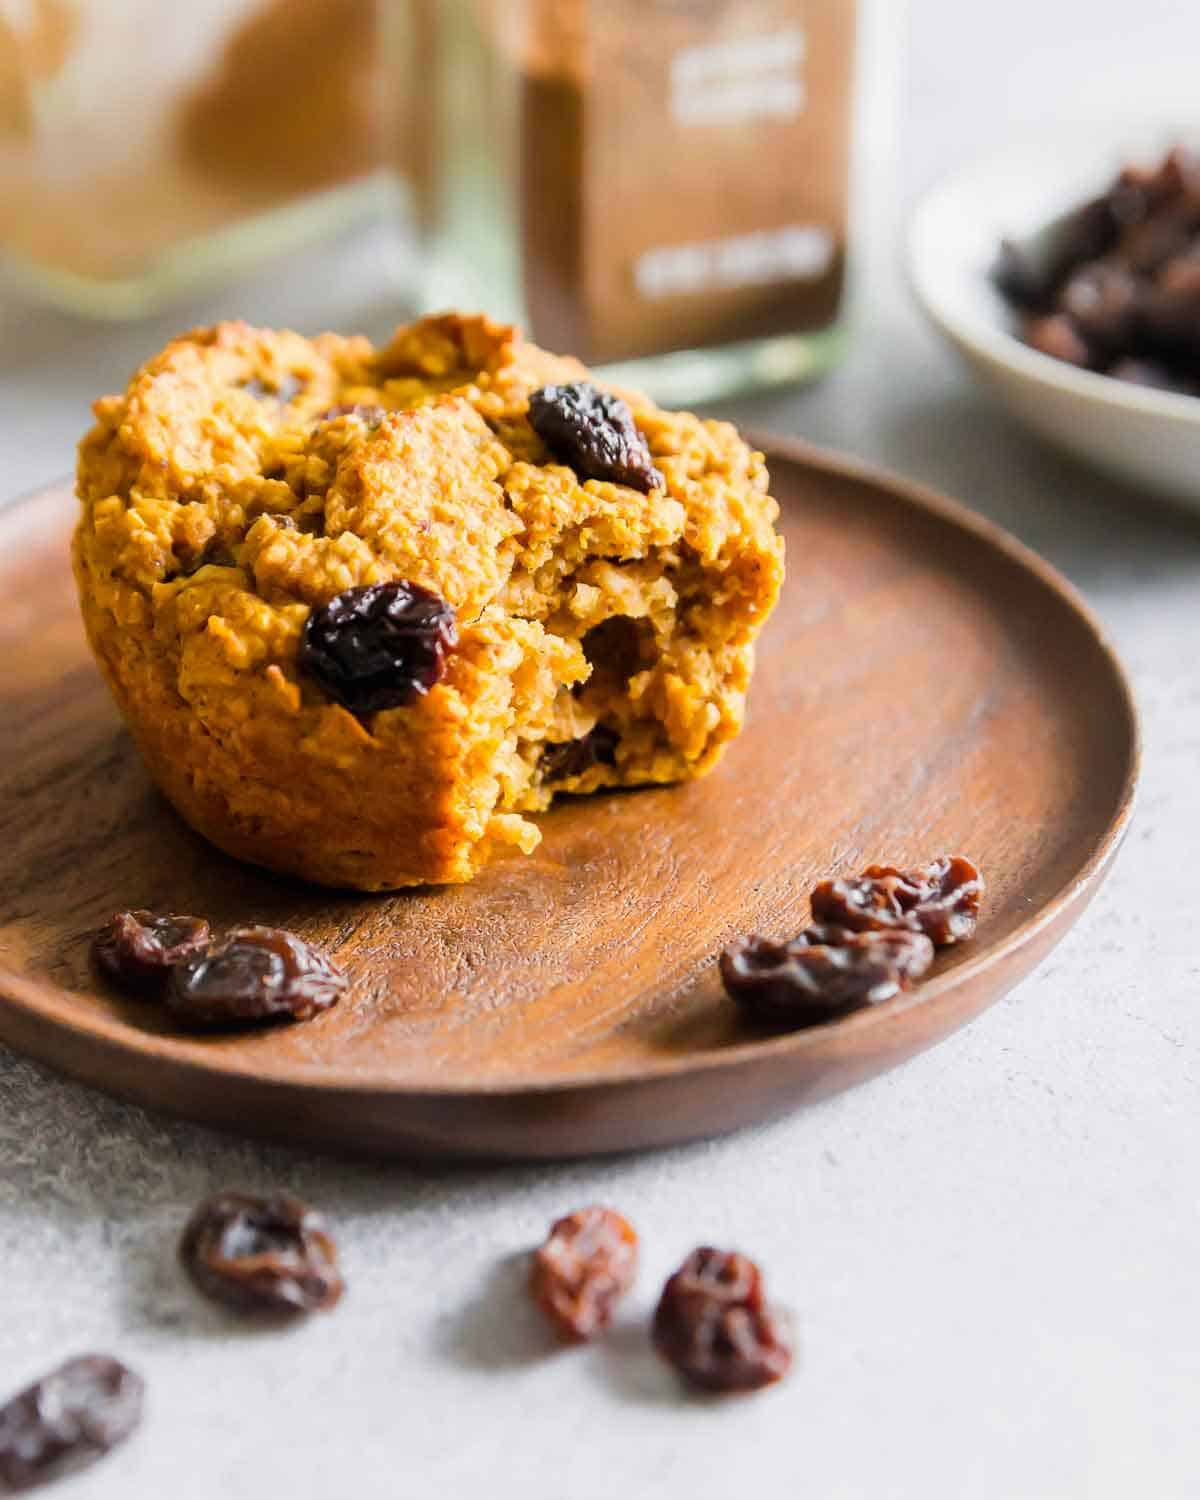 Bran muffins made with sweet potato puree and packed with raisins are a nutritious, gluten-free and vegan snack perfect for colder weather.